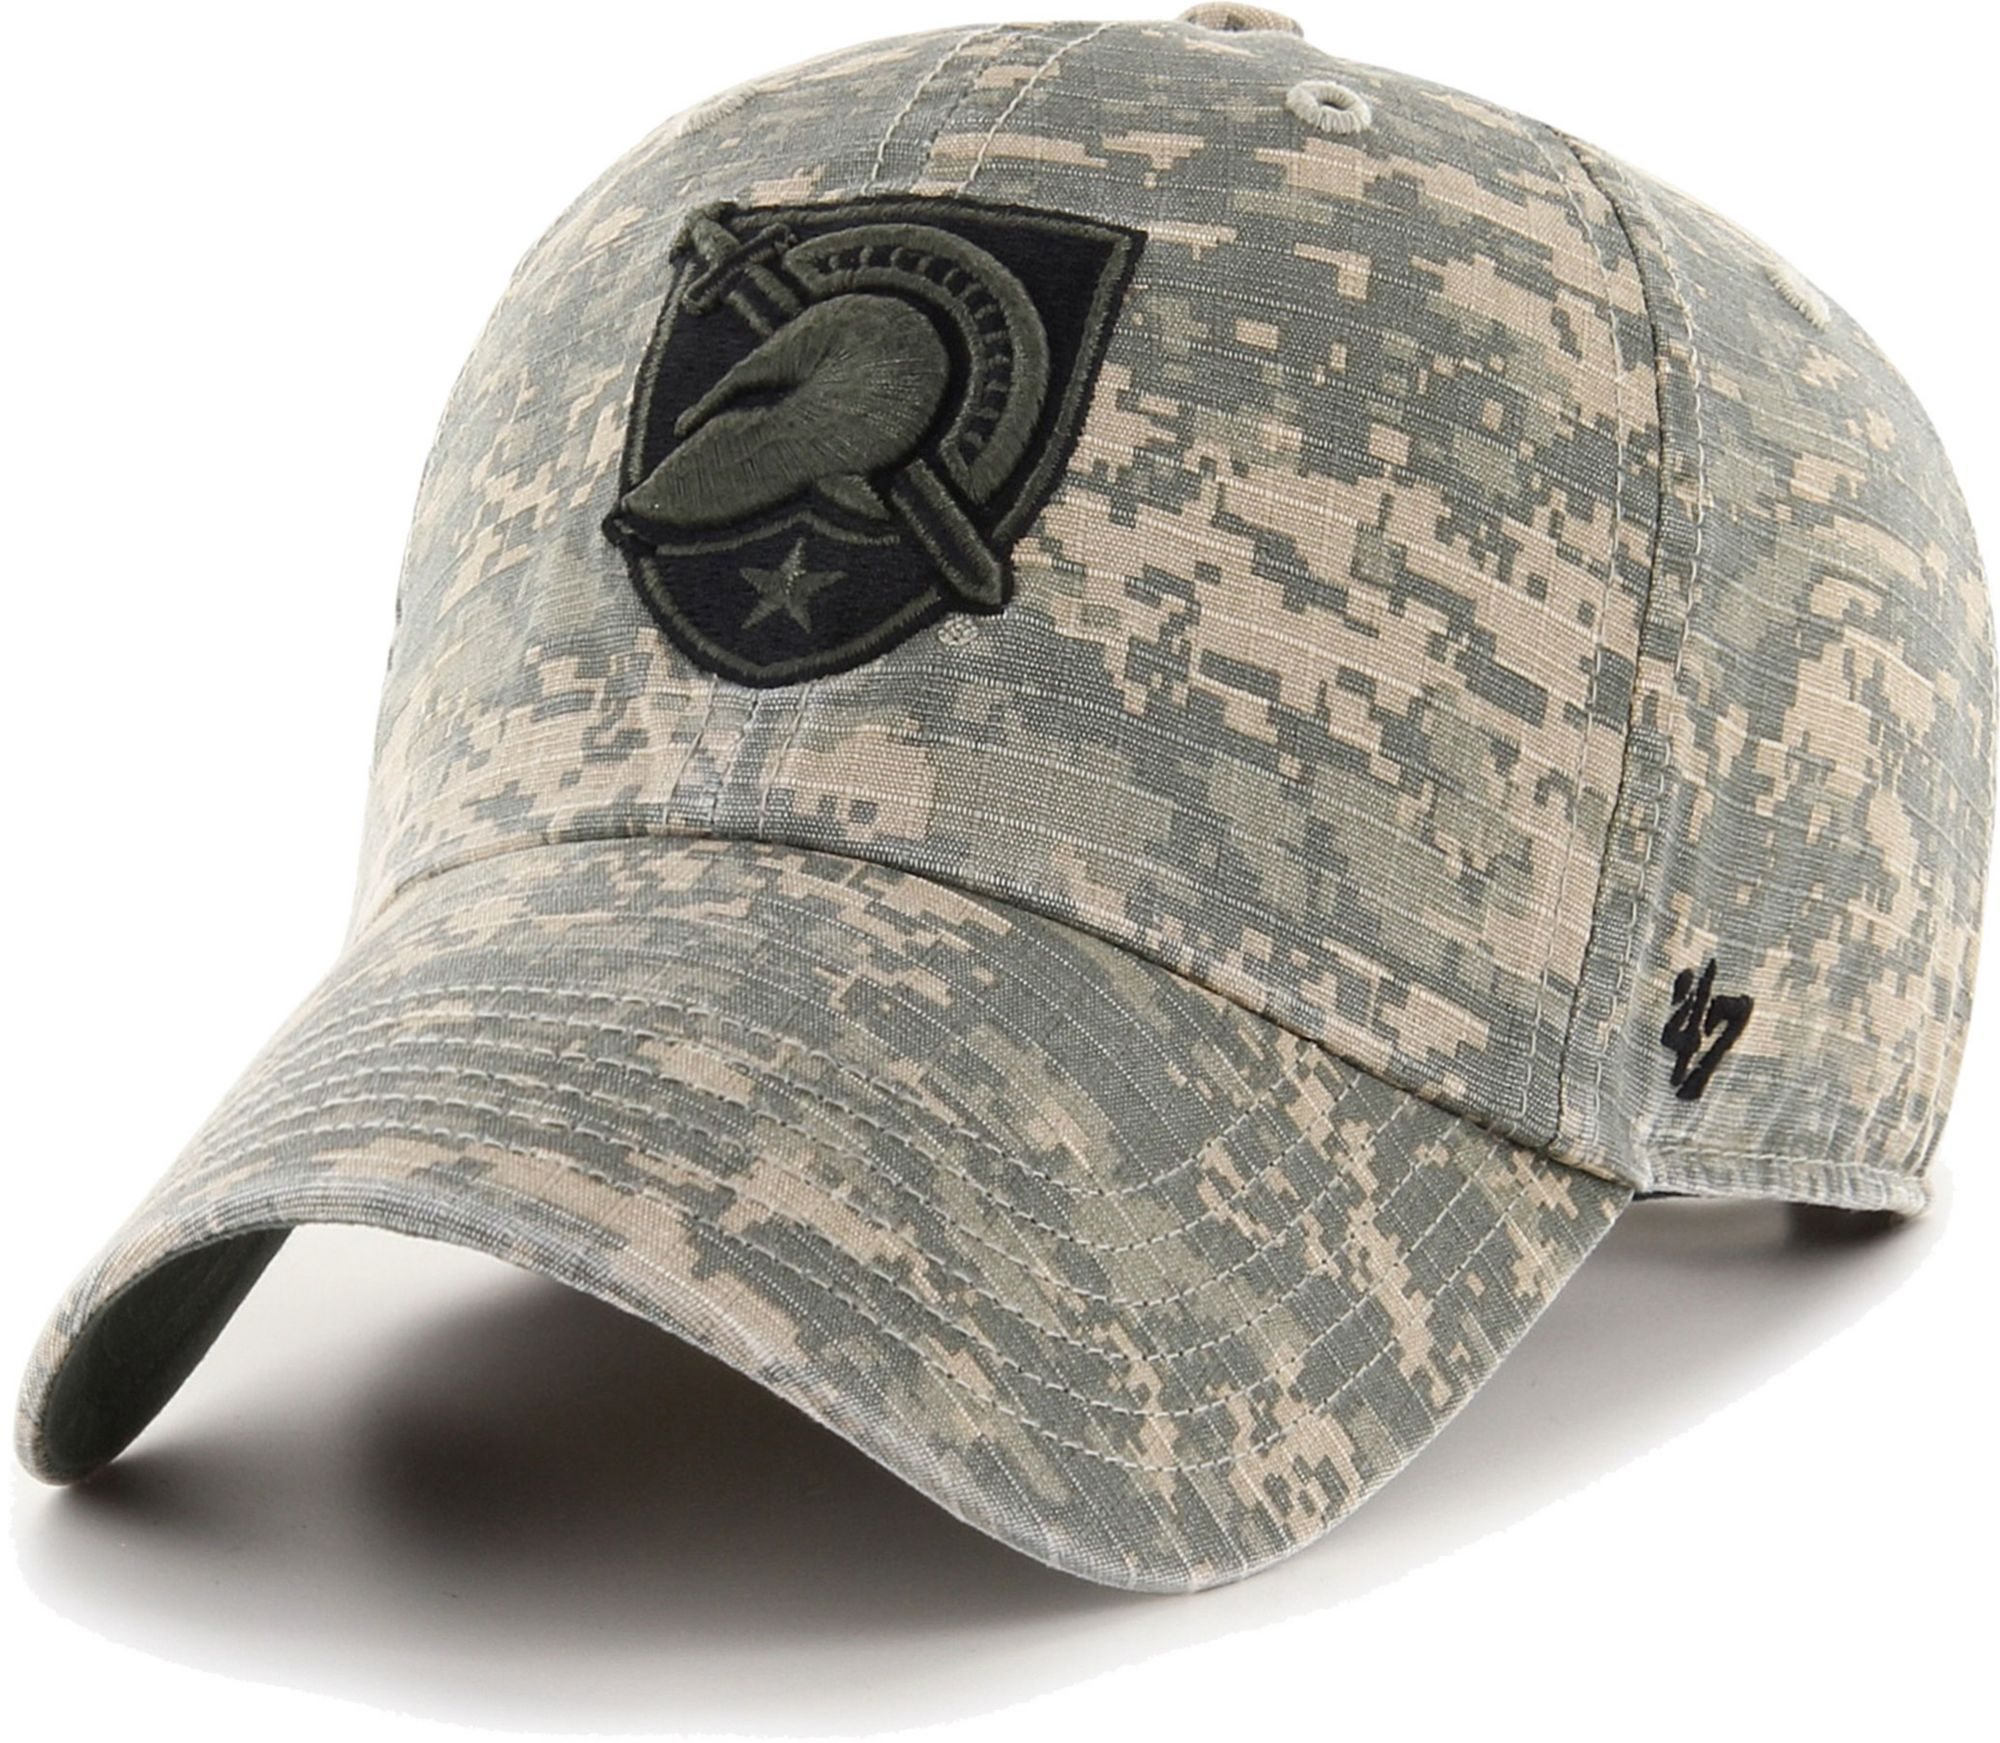 '47 Men's Army West Point Camo OHT Clean Up Adjustable Hat, Size: One size, Green thumbnail